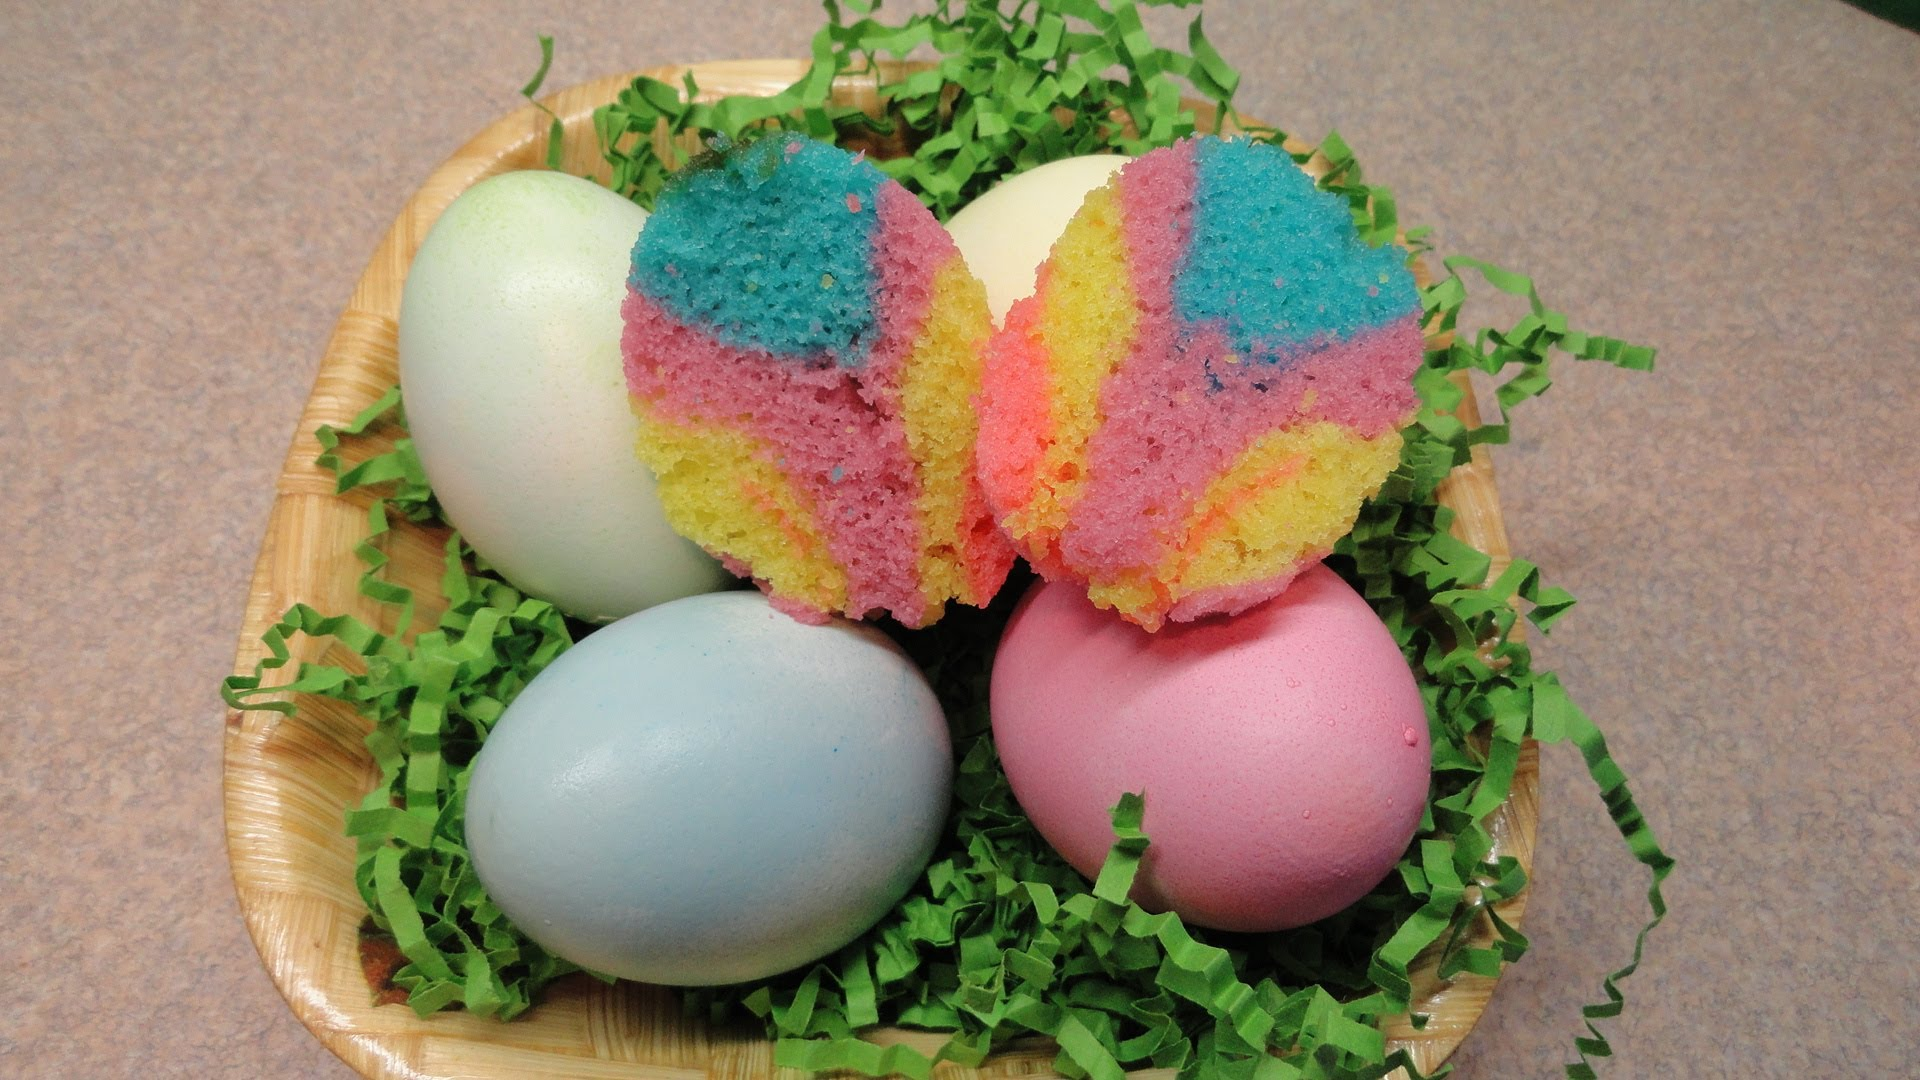 Amazing Easter Cupcakes In Egg Shells - Desserts Corner